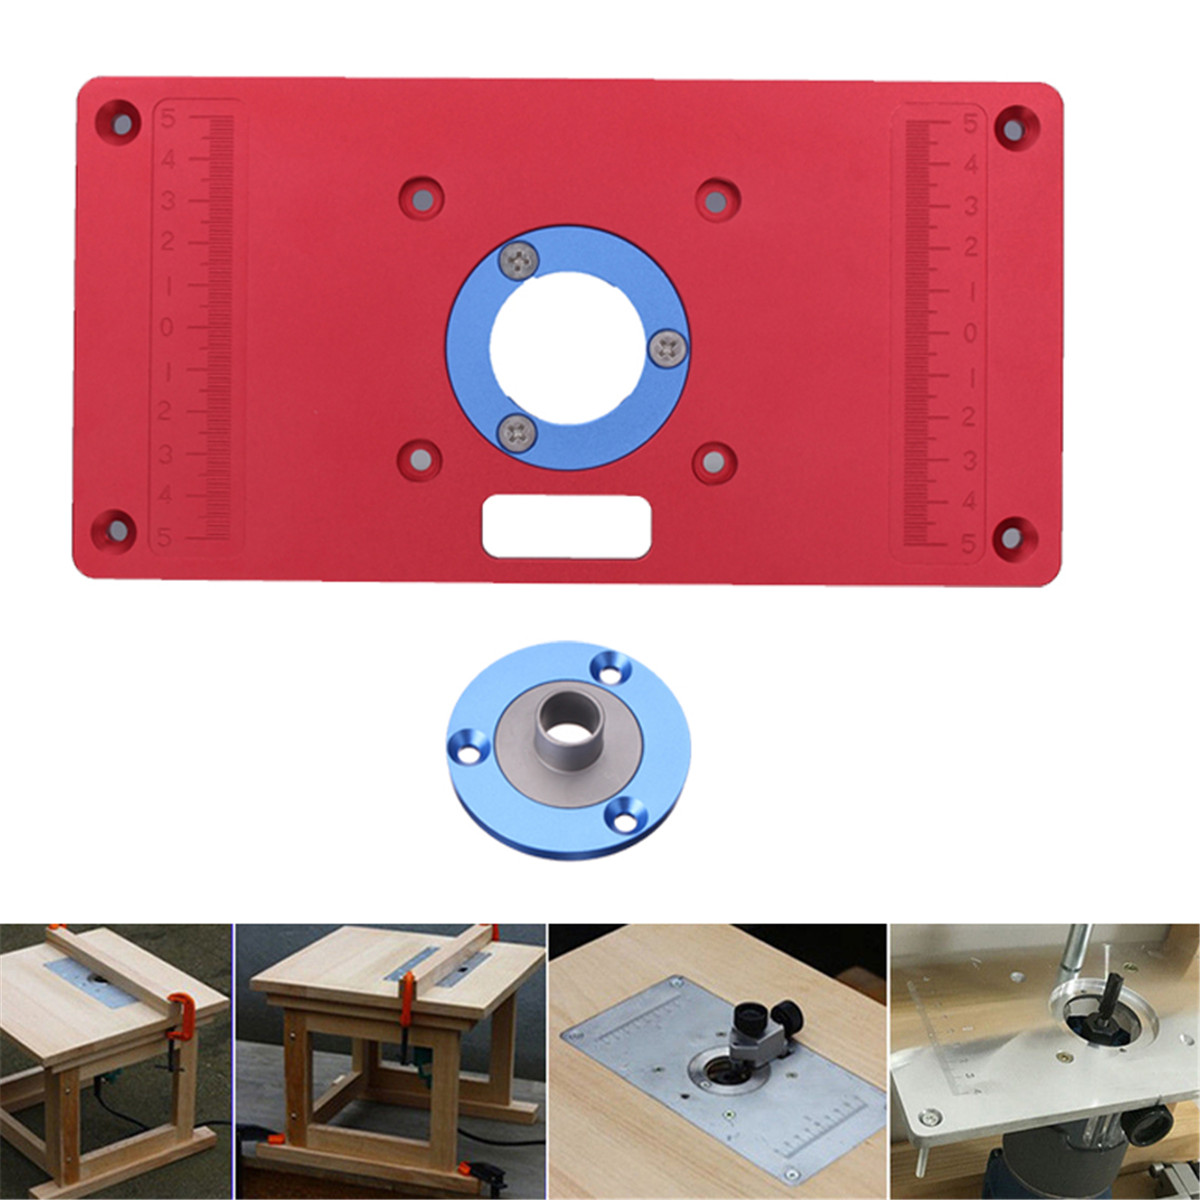 233x117x8mm aluminum router table insert plate for woodworking shipping methods greentooth Image collections